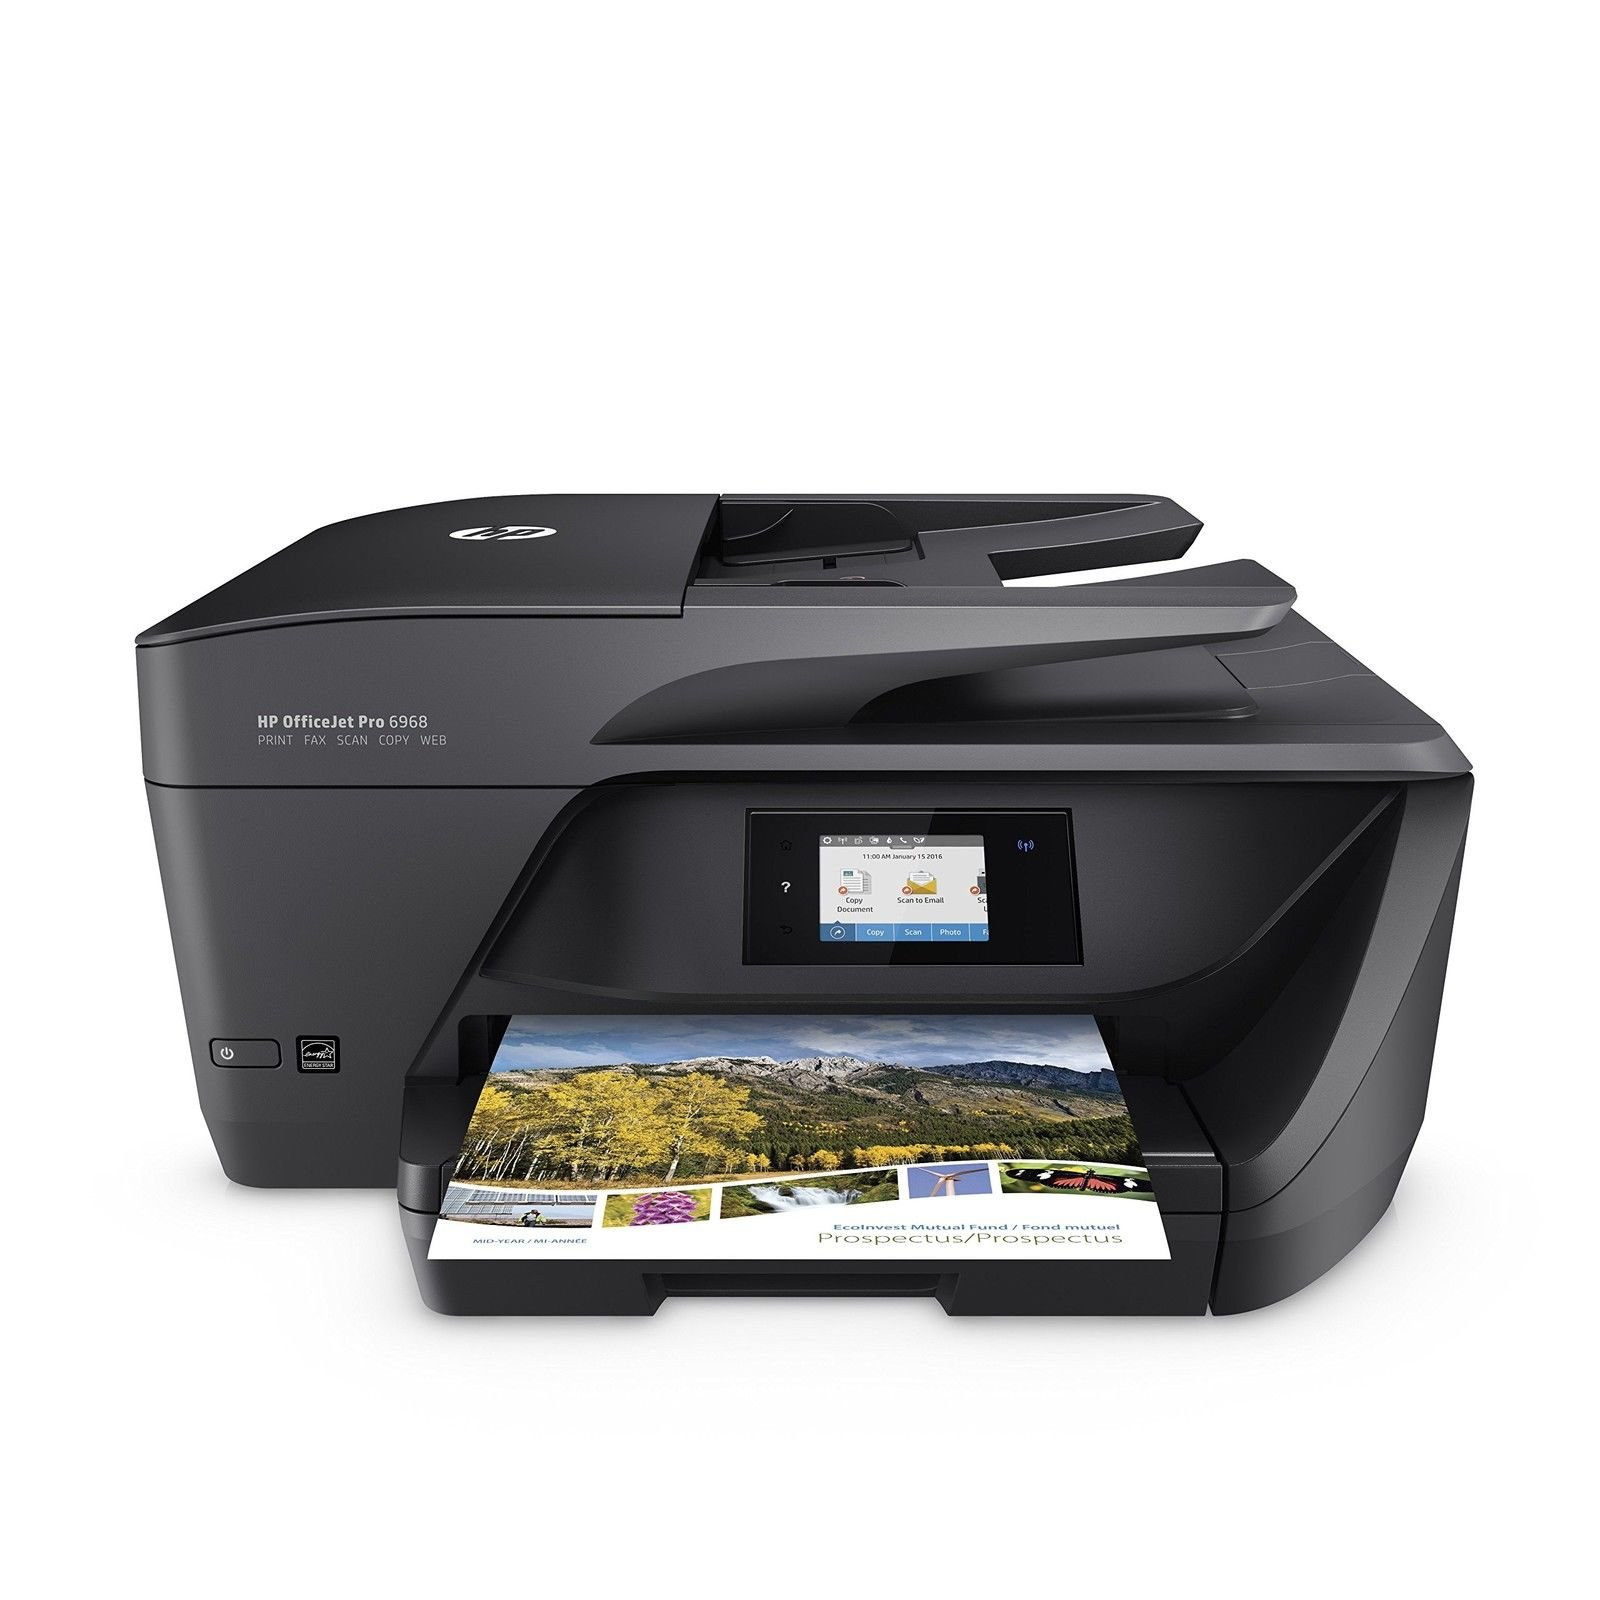 HP OfficeJet Pro 6968 Wireless All-in-One Photo Printer with Mobile Printing, In by fortunershop